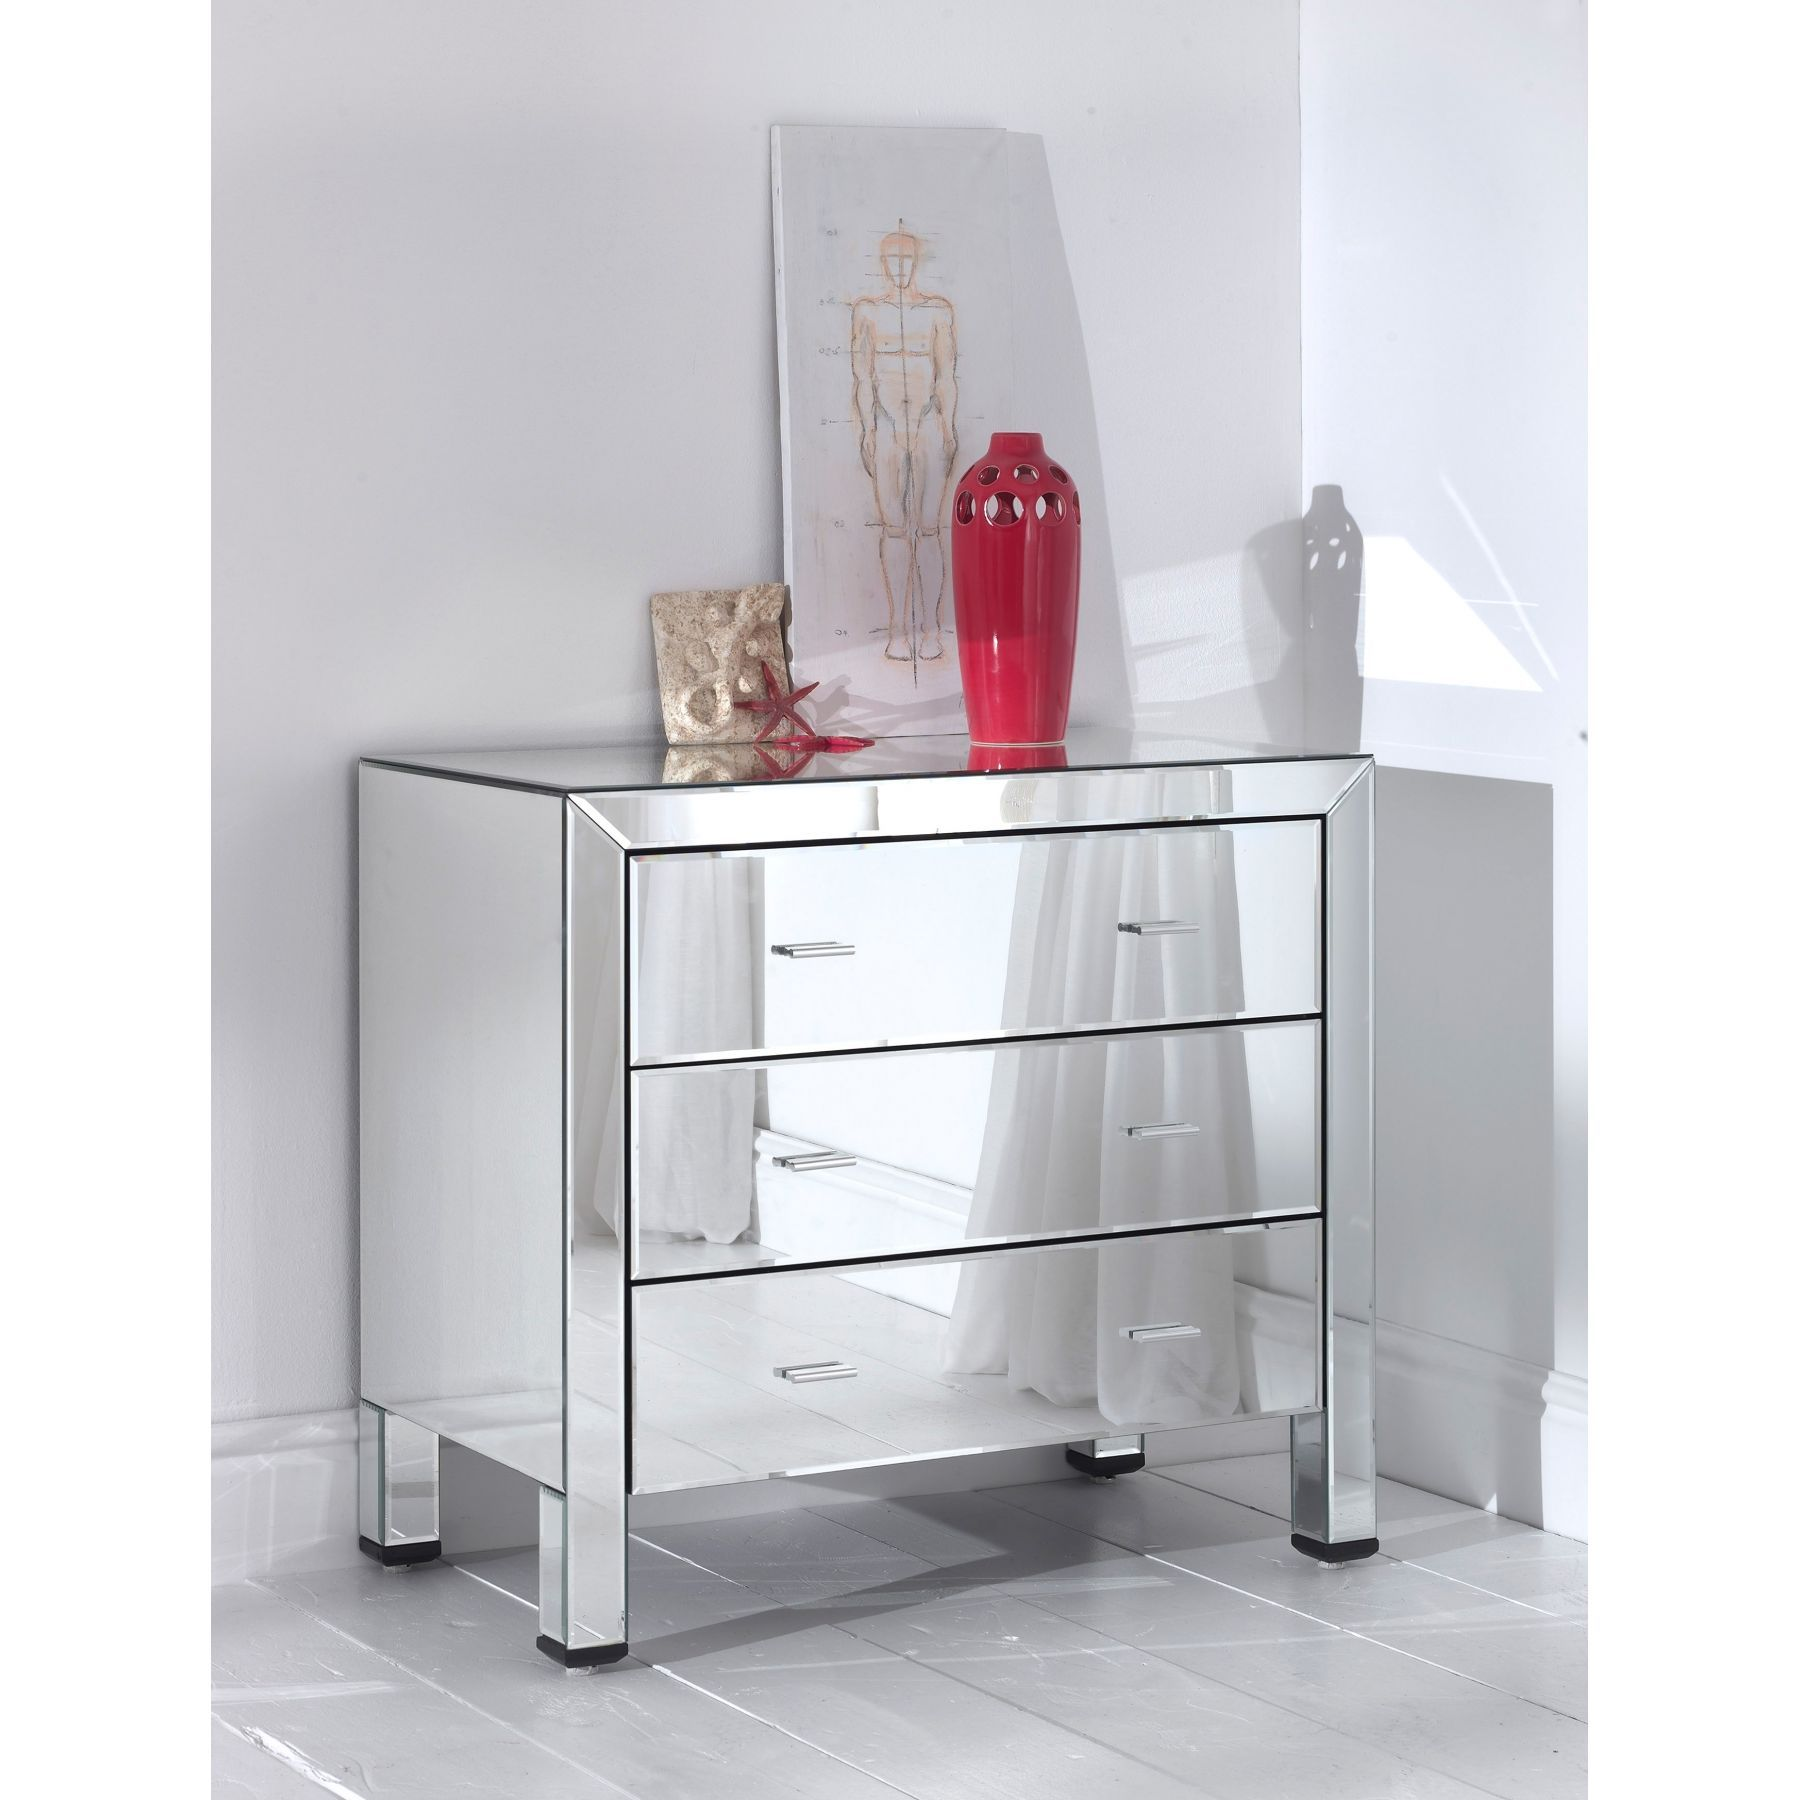 mirror dresser home french furniture mirrored furniture mirrored furniture - Cheap Mirrored Furniture